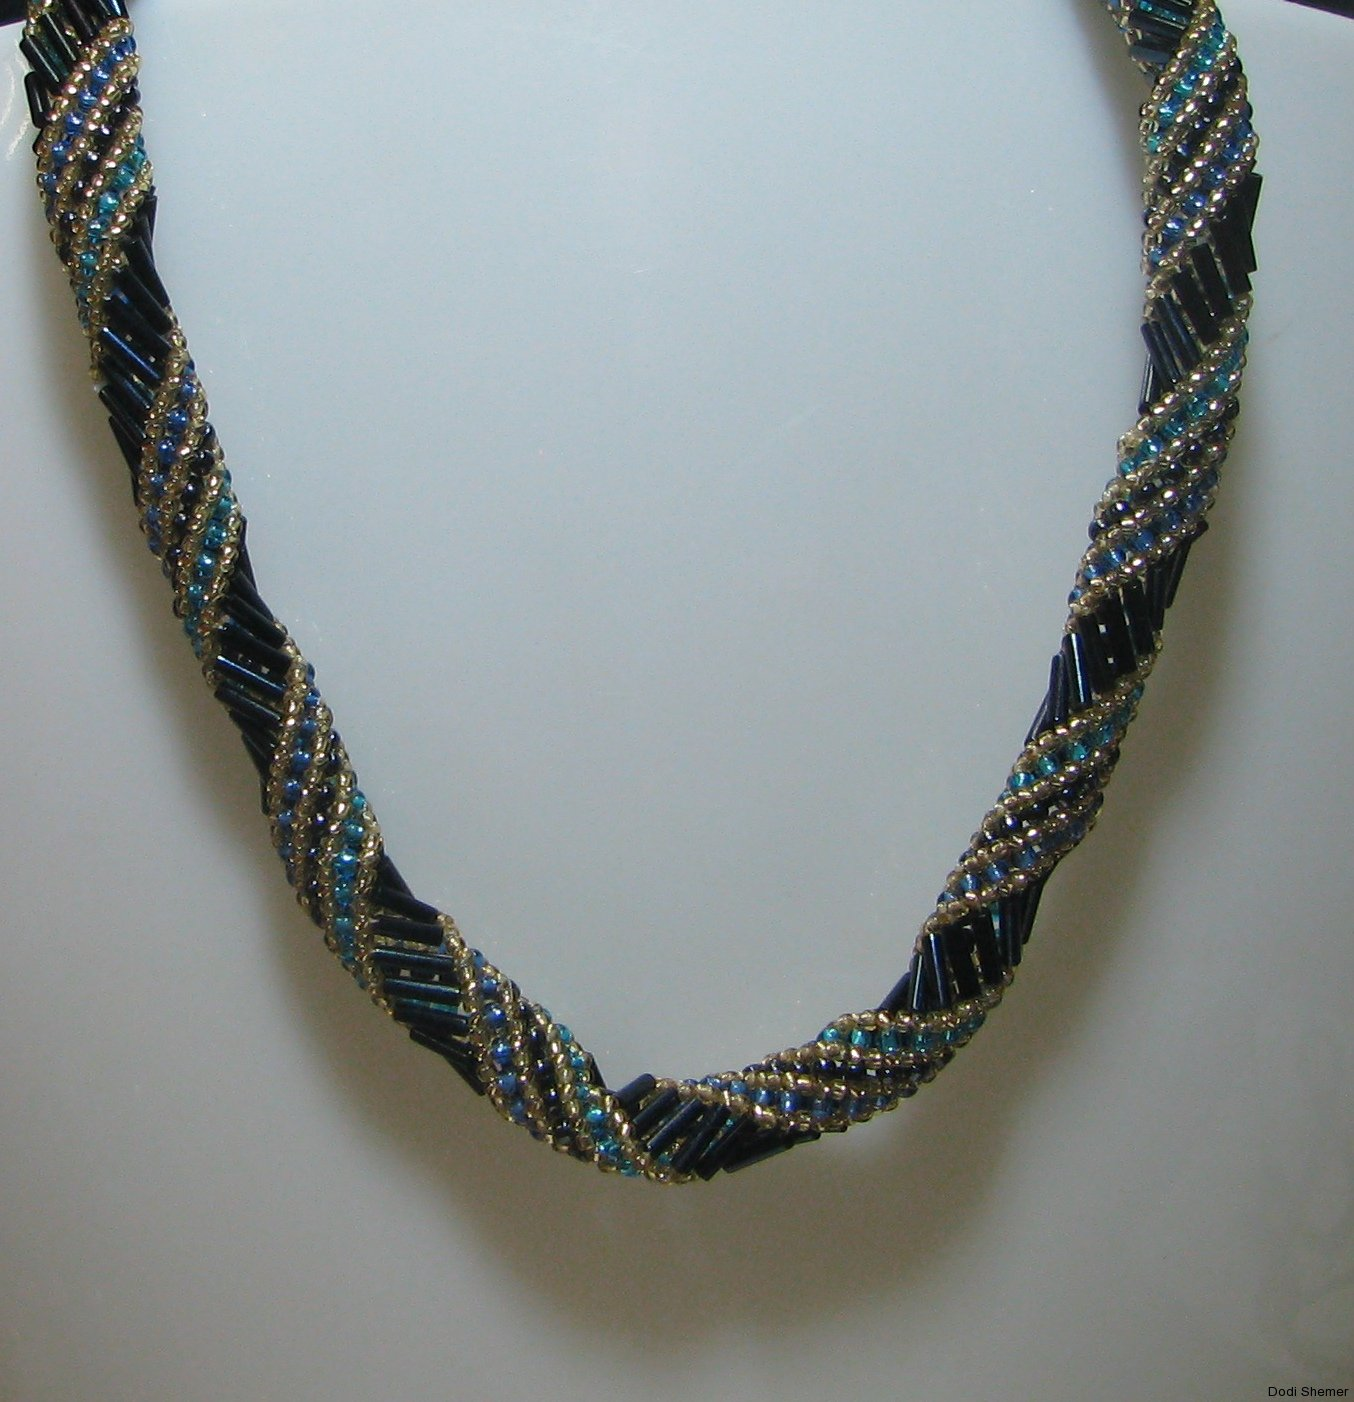 necklace_11_img_6312